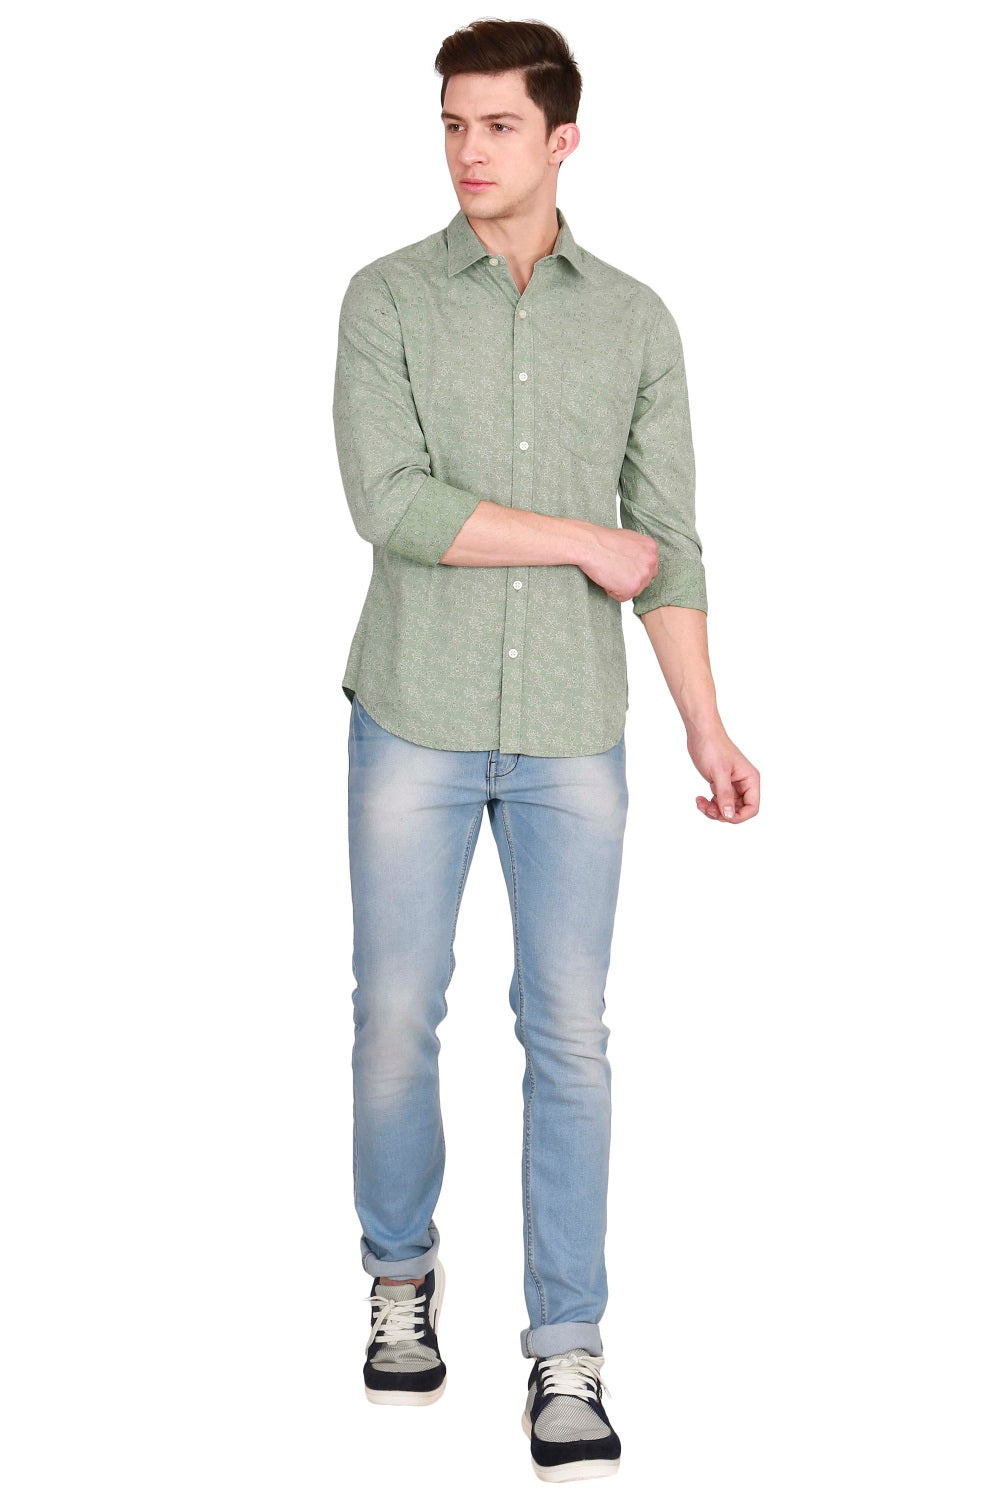 IMYOUNG Green Solid Slim Fit Casual Shirt